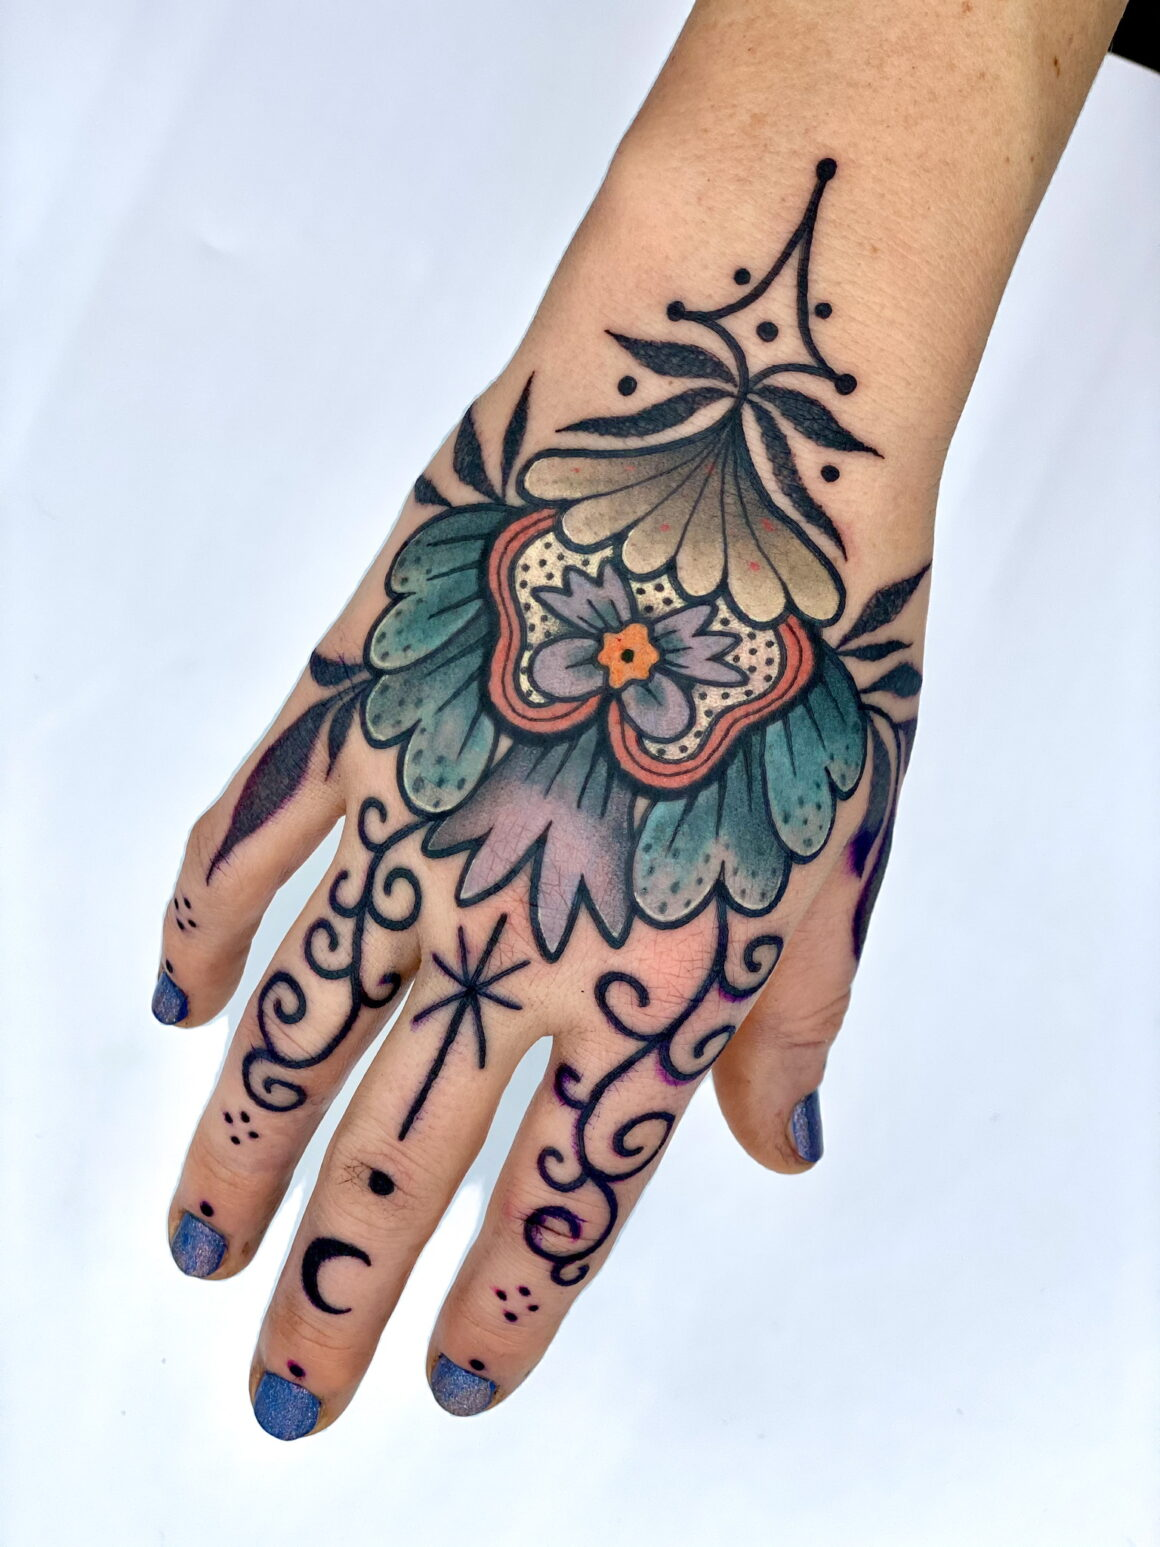 Amarë, Tattoo with love, Belle Croix-North, France